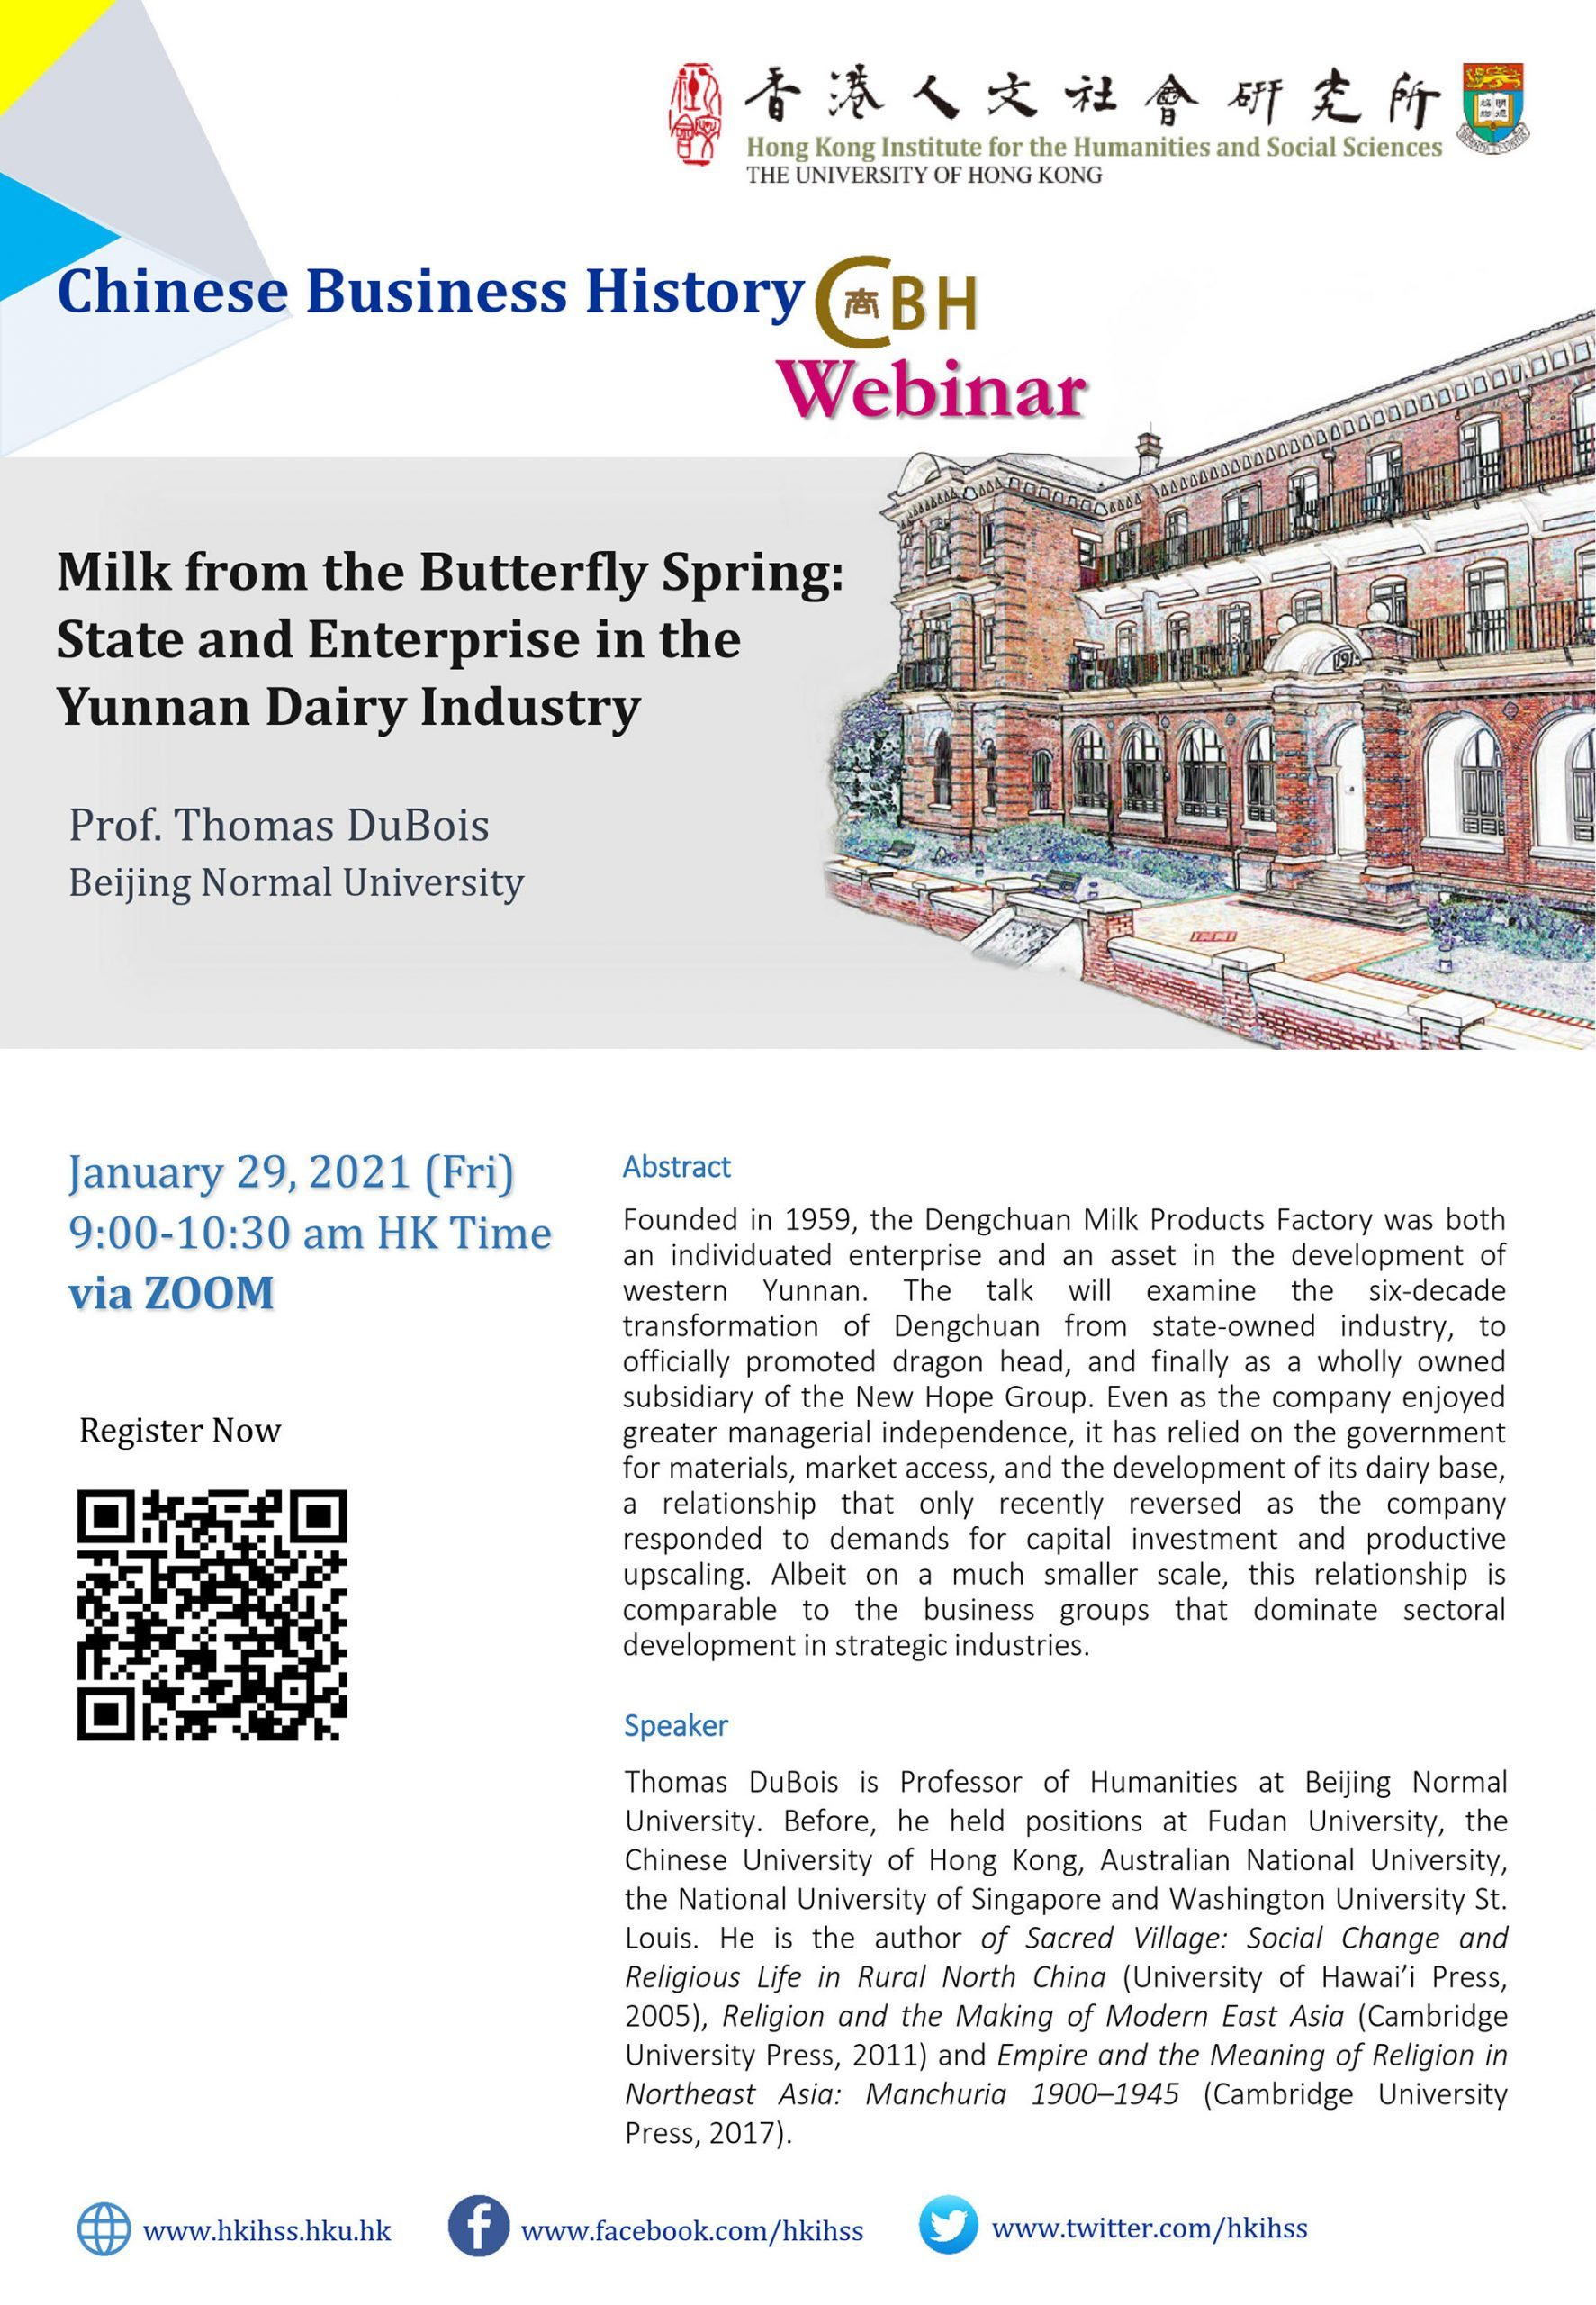 """Chinese Business History Webinar on """"Milk from the Butterfly Spring: State and Enterprise in the Yunnan Dairy Industry"""" by Professor Thomas DuBois (January 29, 2021)"""